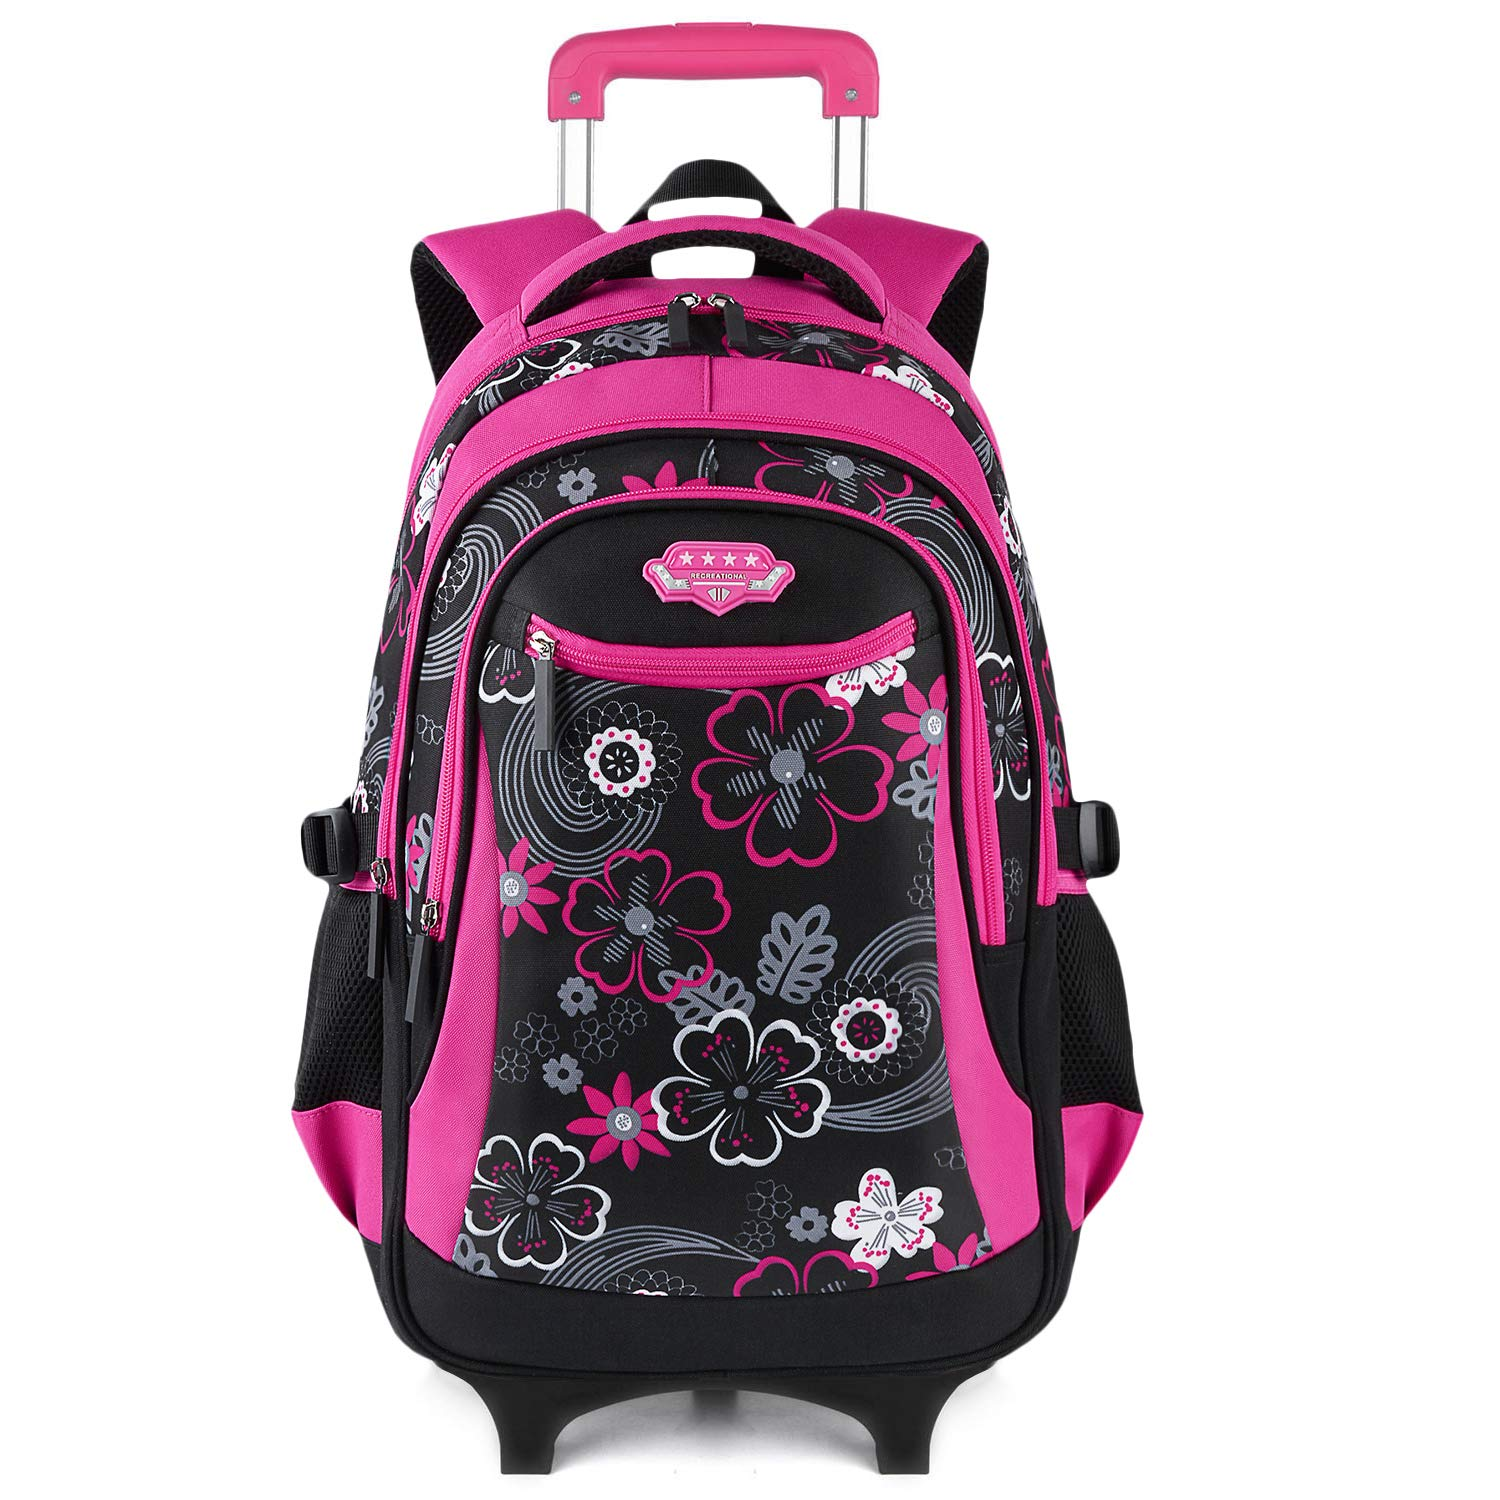 Wheeled Backpack, Fanspack 2019 New Rolling Backpack for Girls School Roller Backpack kids Rolling Bookbag Waterproof Backpack by Fanspack